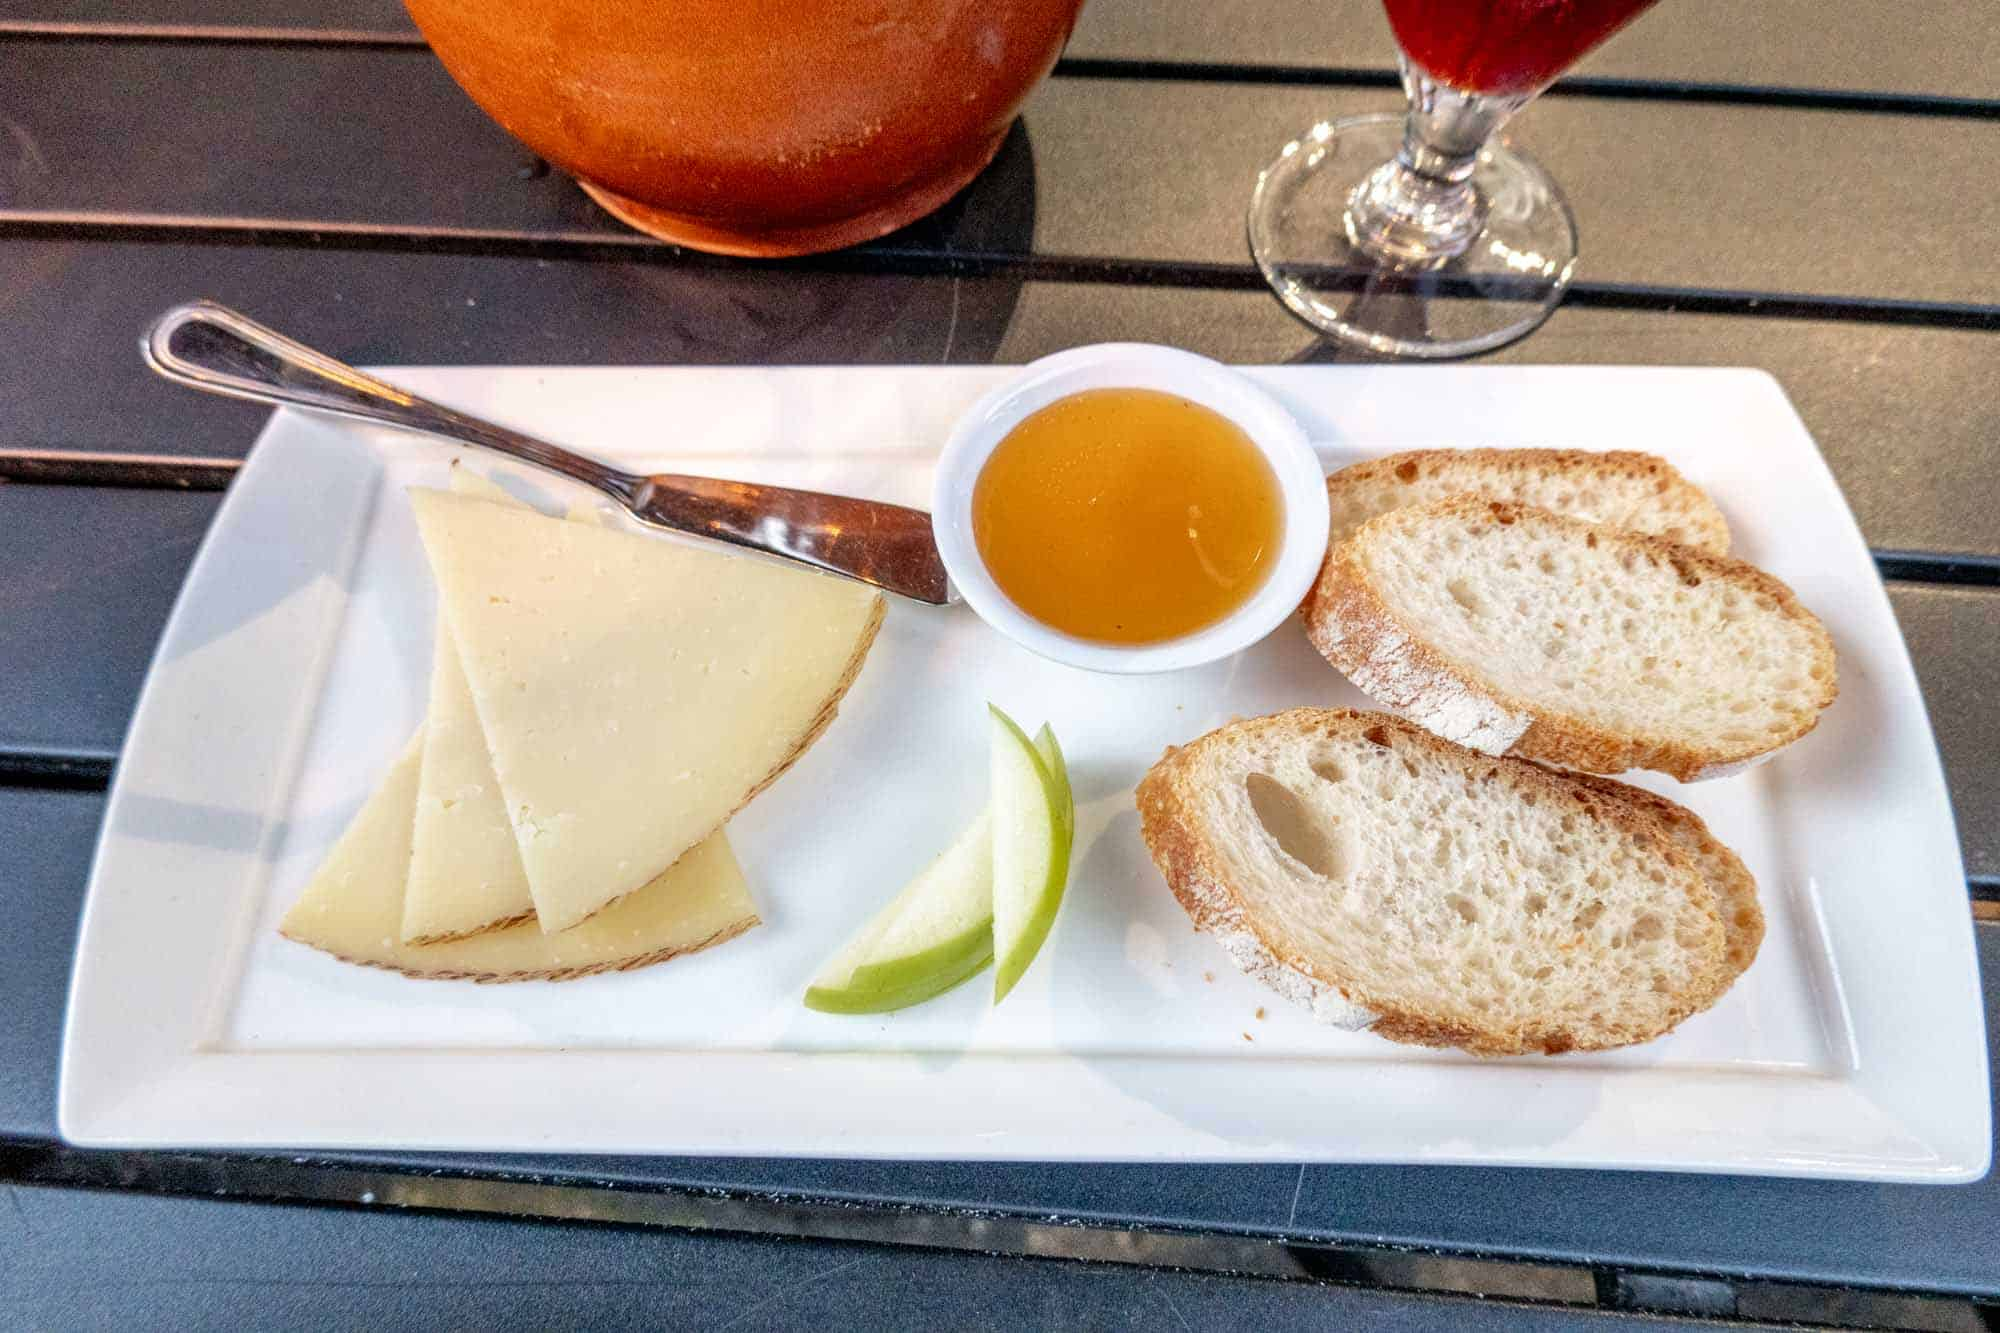 Cheese plate with honey, apple slices and bread